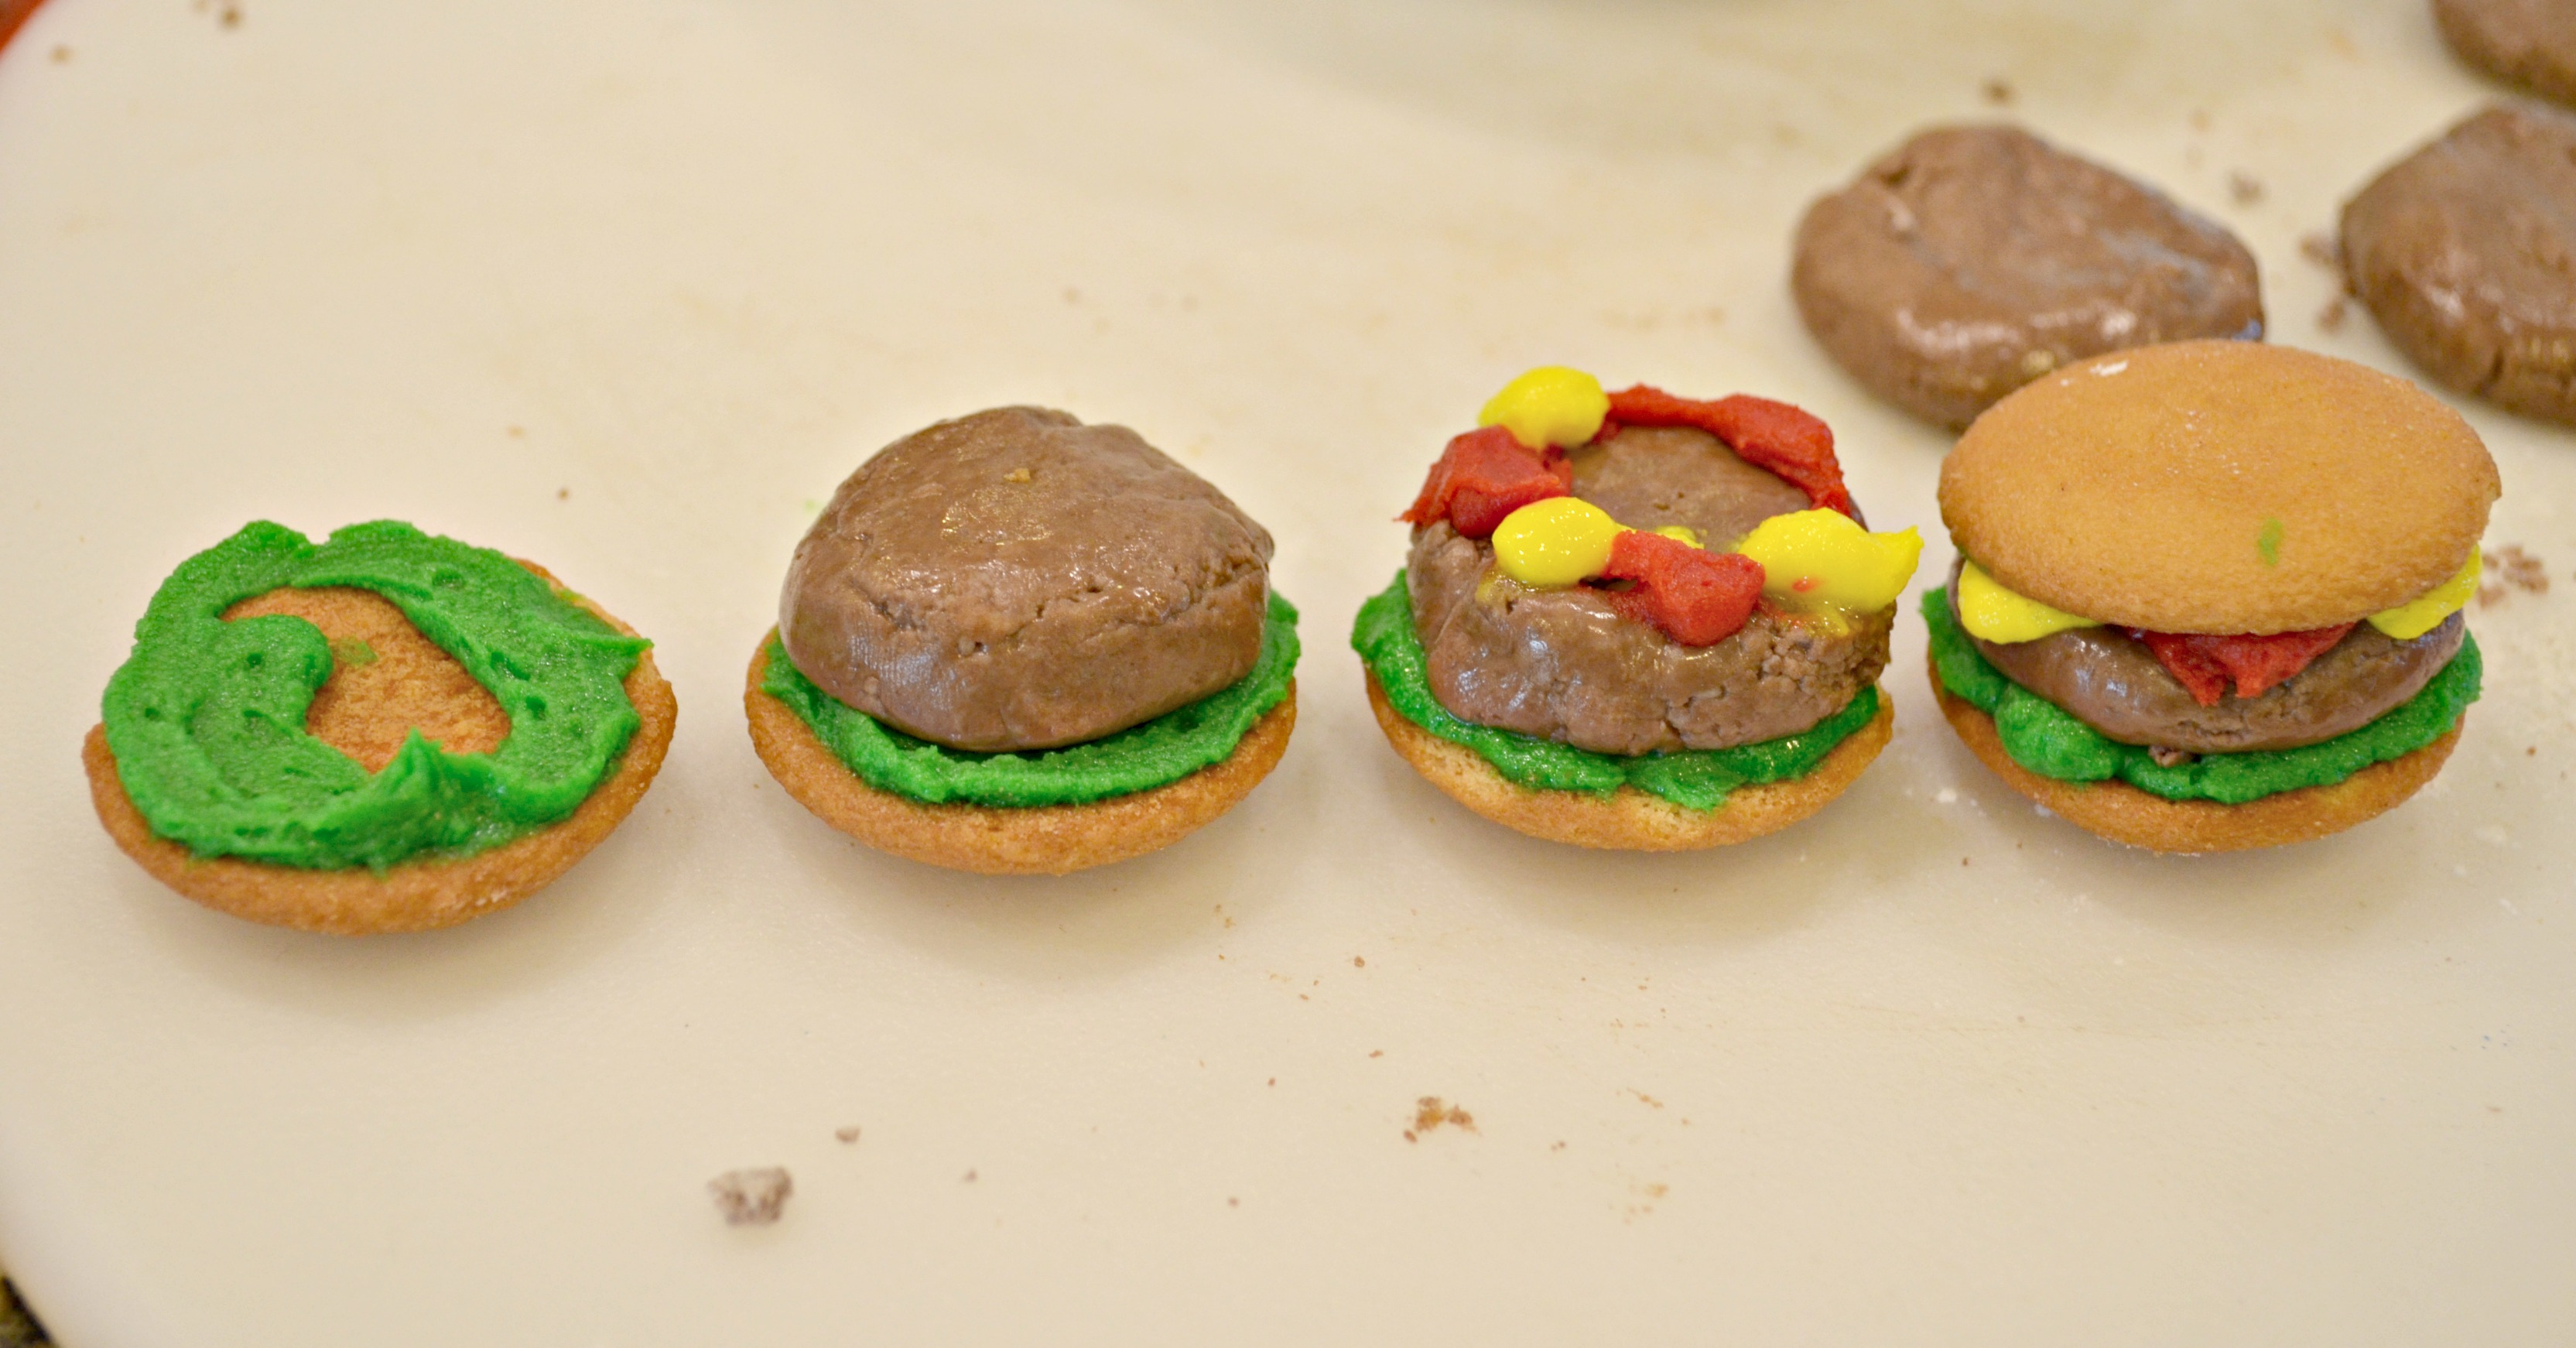 dessert burgers for april fools day  shared photo #2